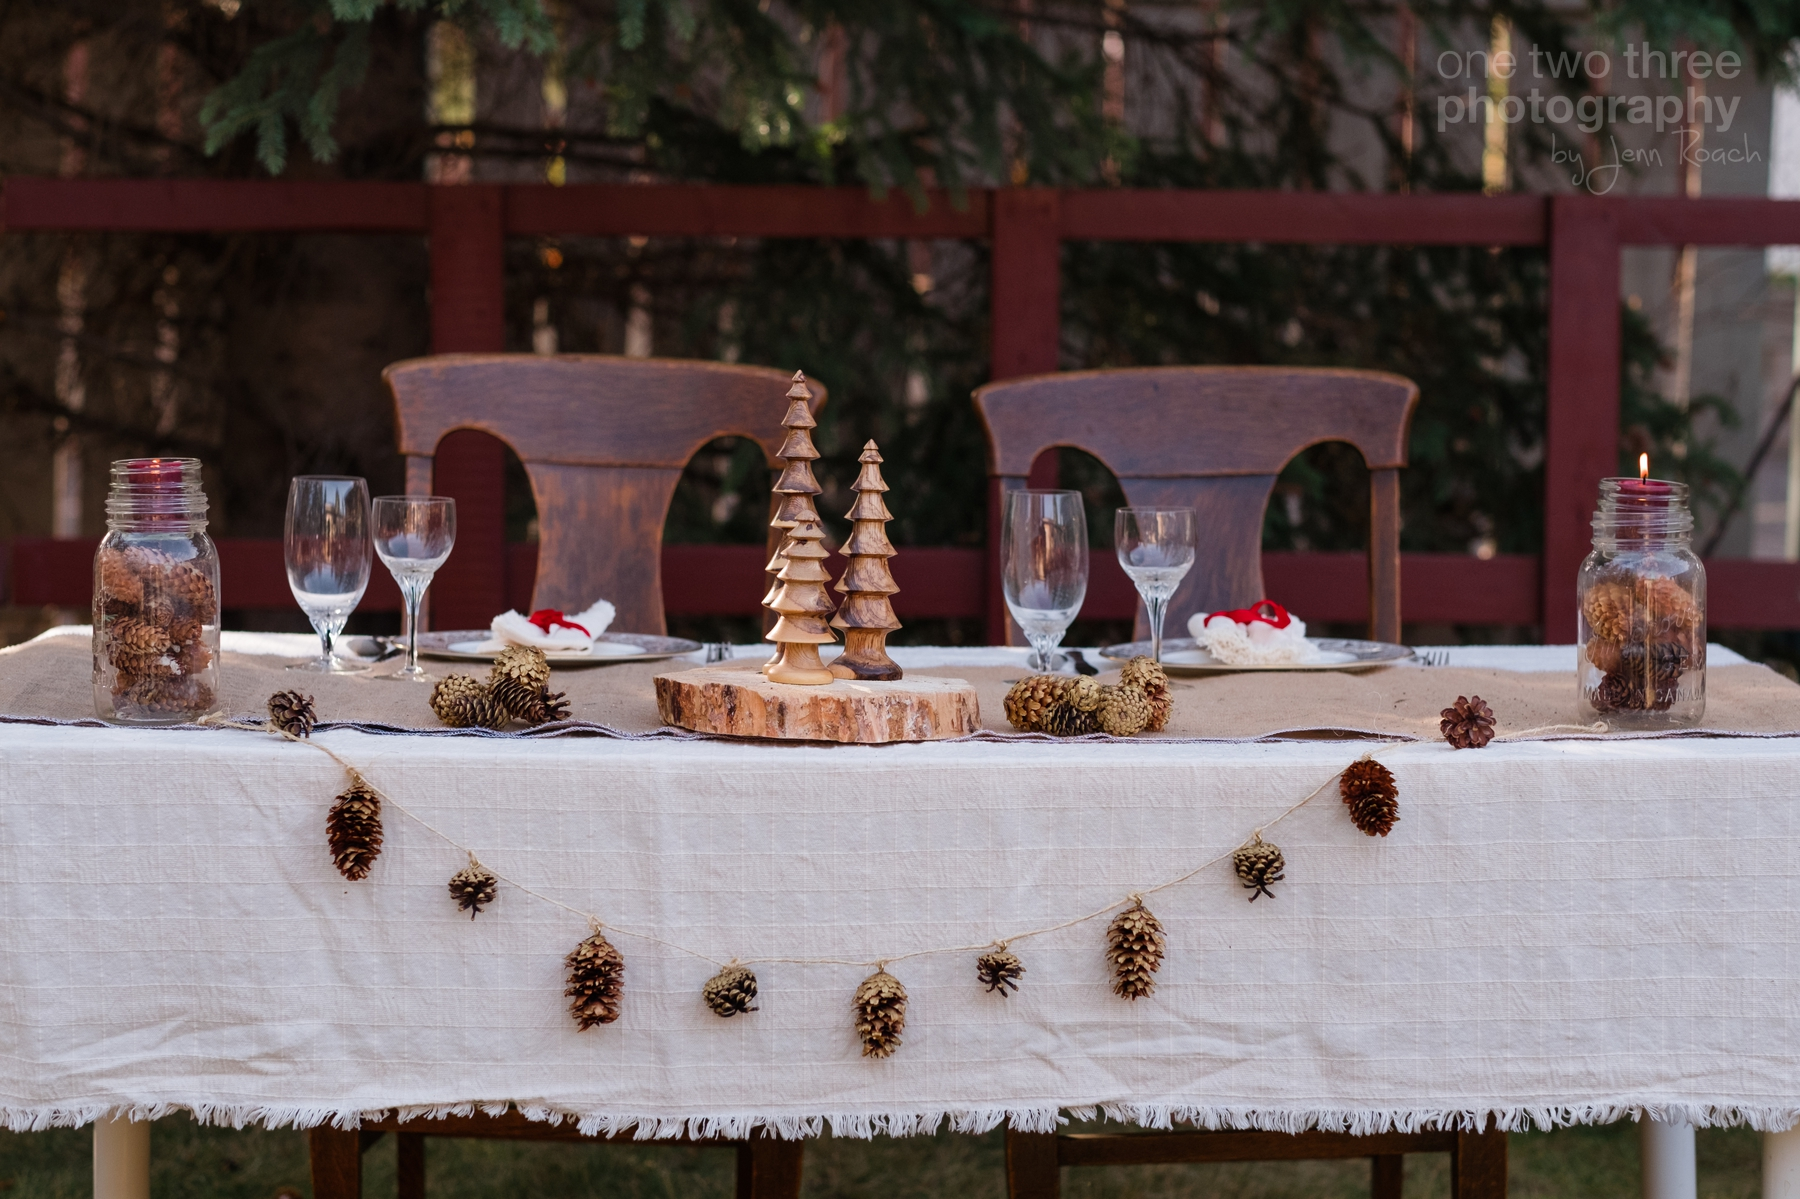 Rustic wedding table settings with pinecones and wood